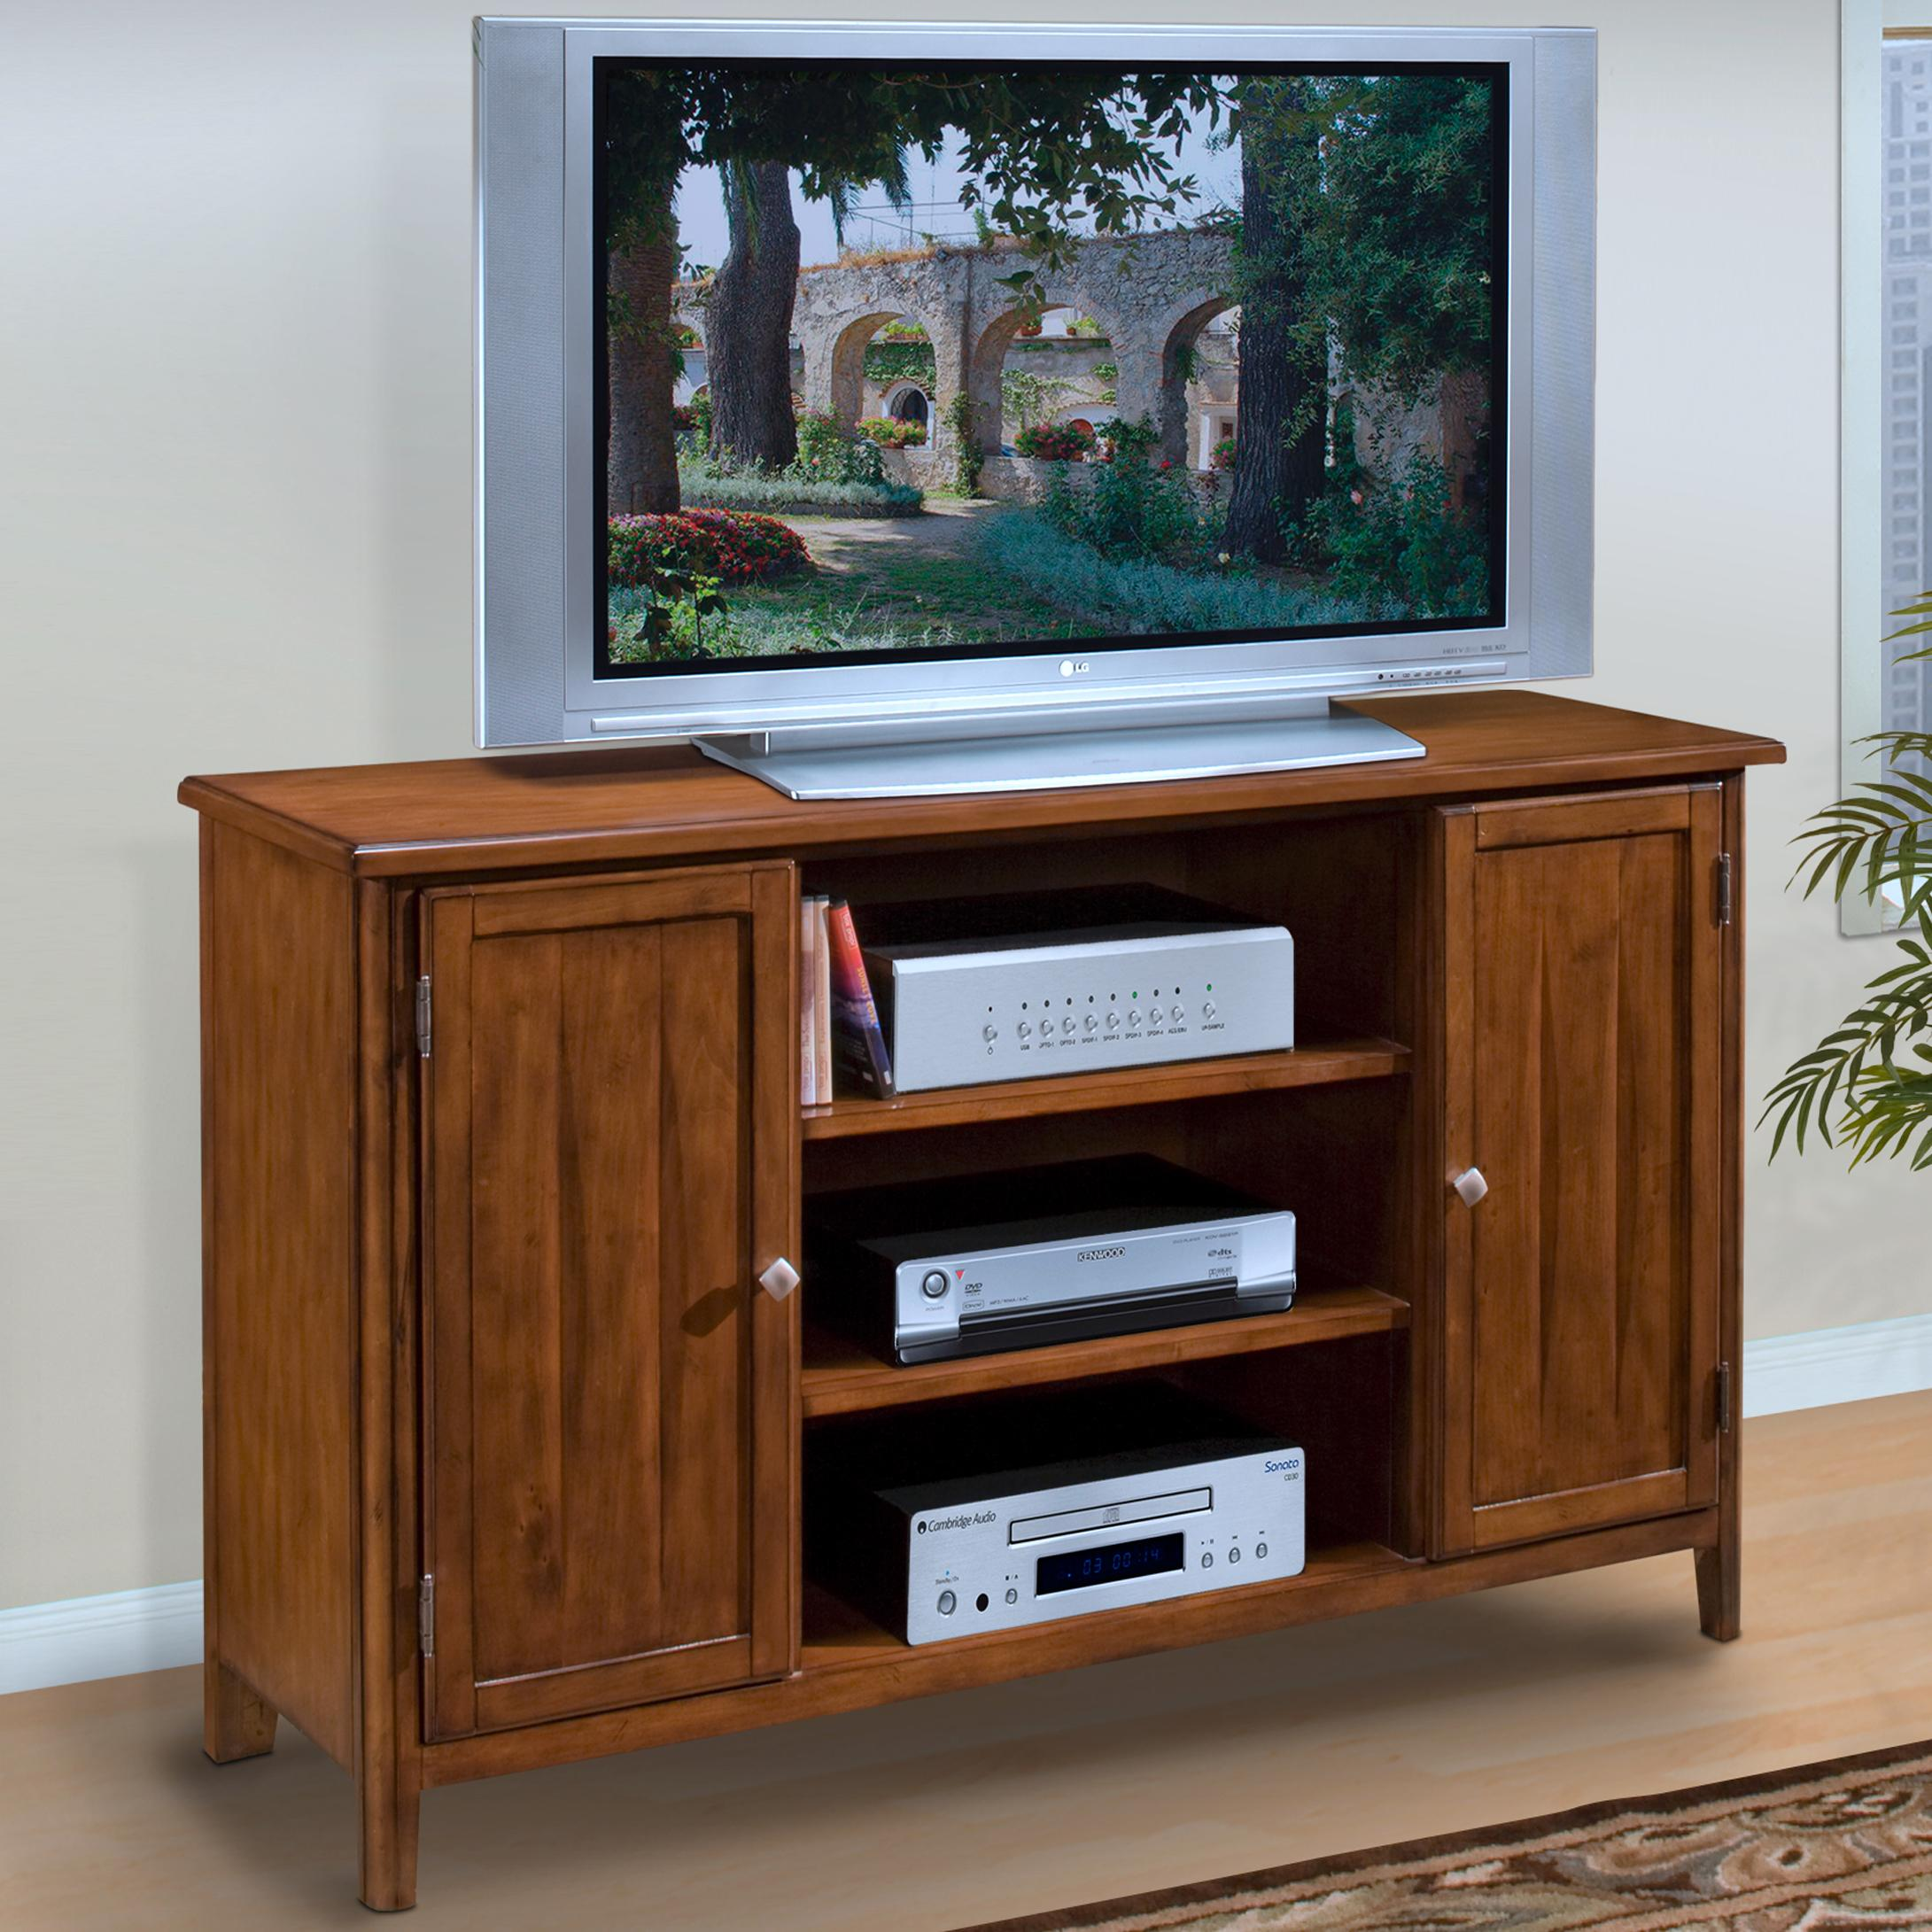 New Classic Crestline Entertainment Tv Console With Doors And Shelves Michael 39 S Furniture